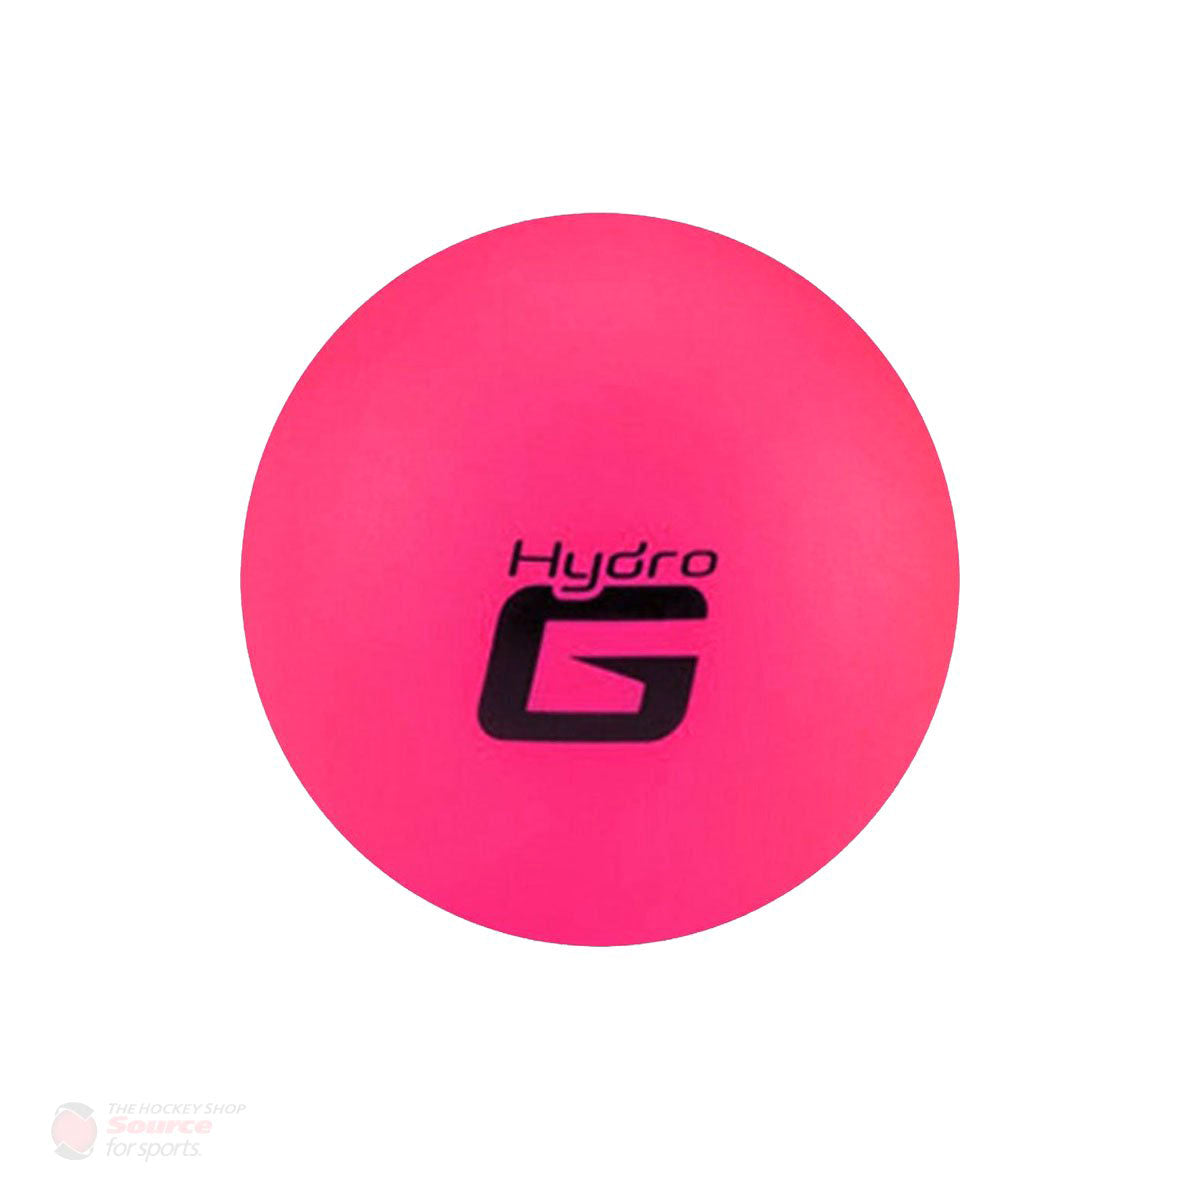 Bauer Hydro-G Liquid Filled No Bounce Hockey Balls